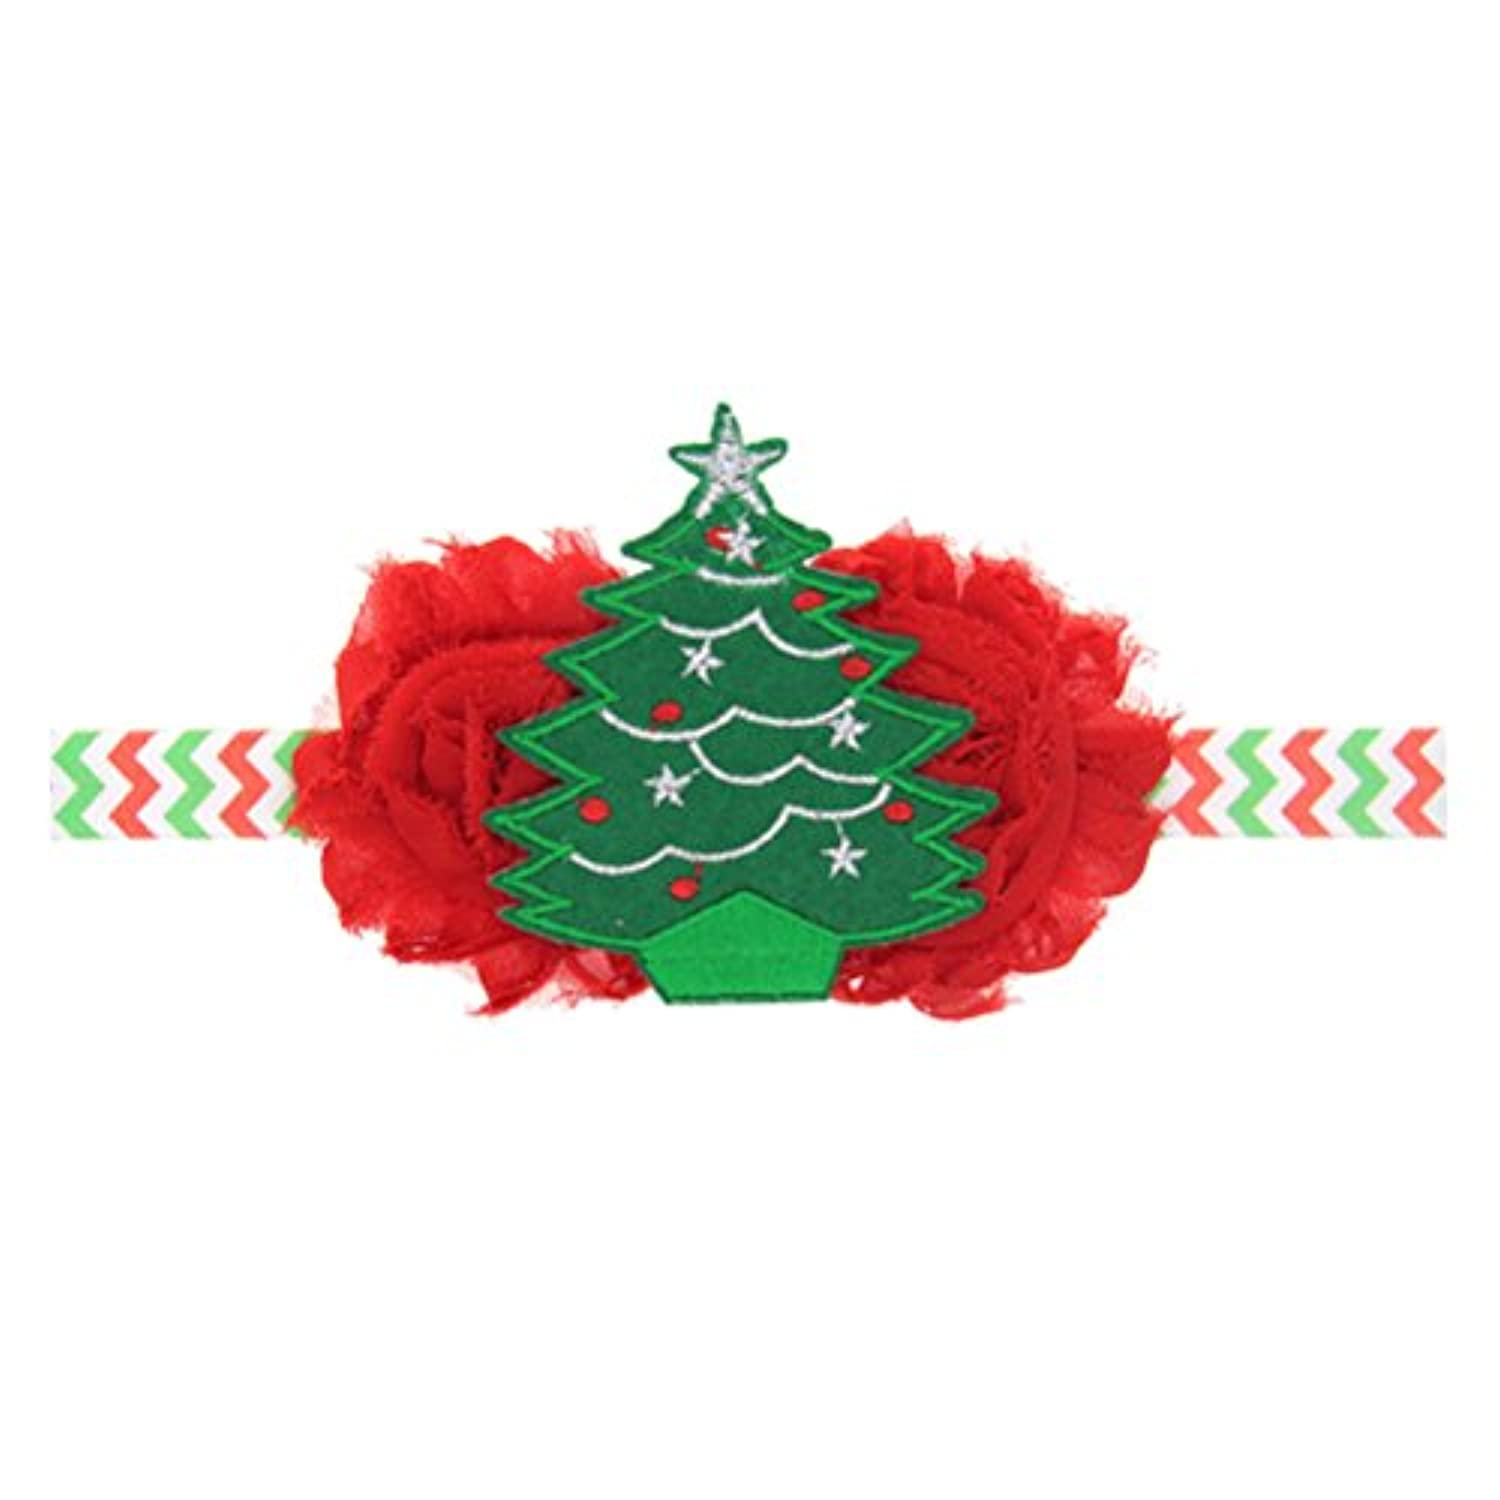 Zhhlaixing ベビー小物 Kids Baby Girls Soft Elastic Flowers Headband Hairband Hair Accessories for Christmas 5127